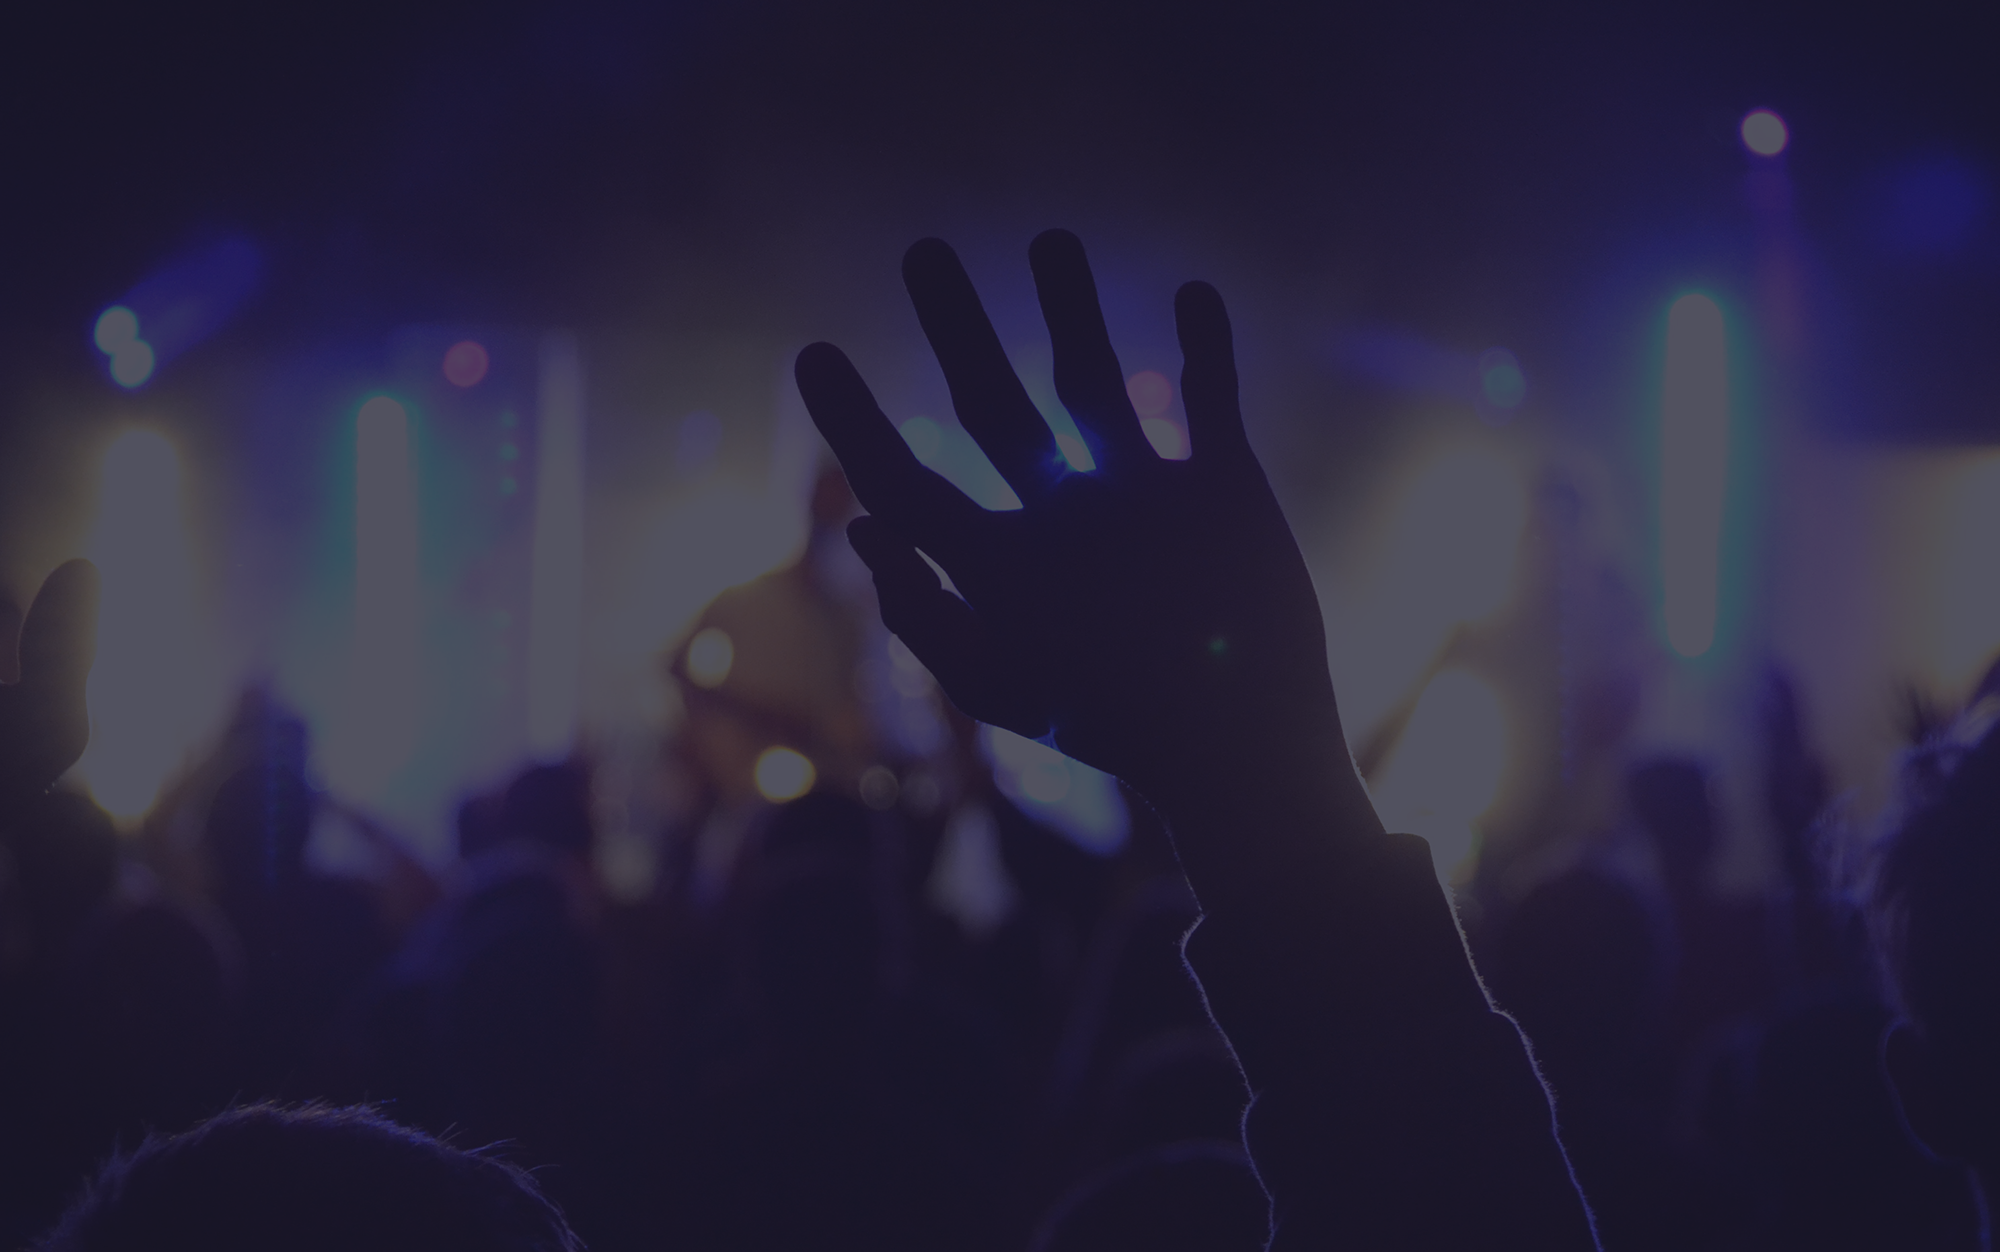 5 tips to instantly improve your worship leading - FREE AUDIO TRAINING:Discover 5 simple tips that will instantly improve your worship leading.